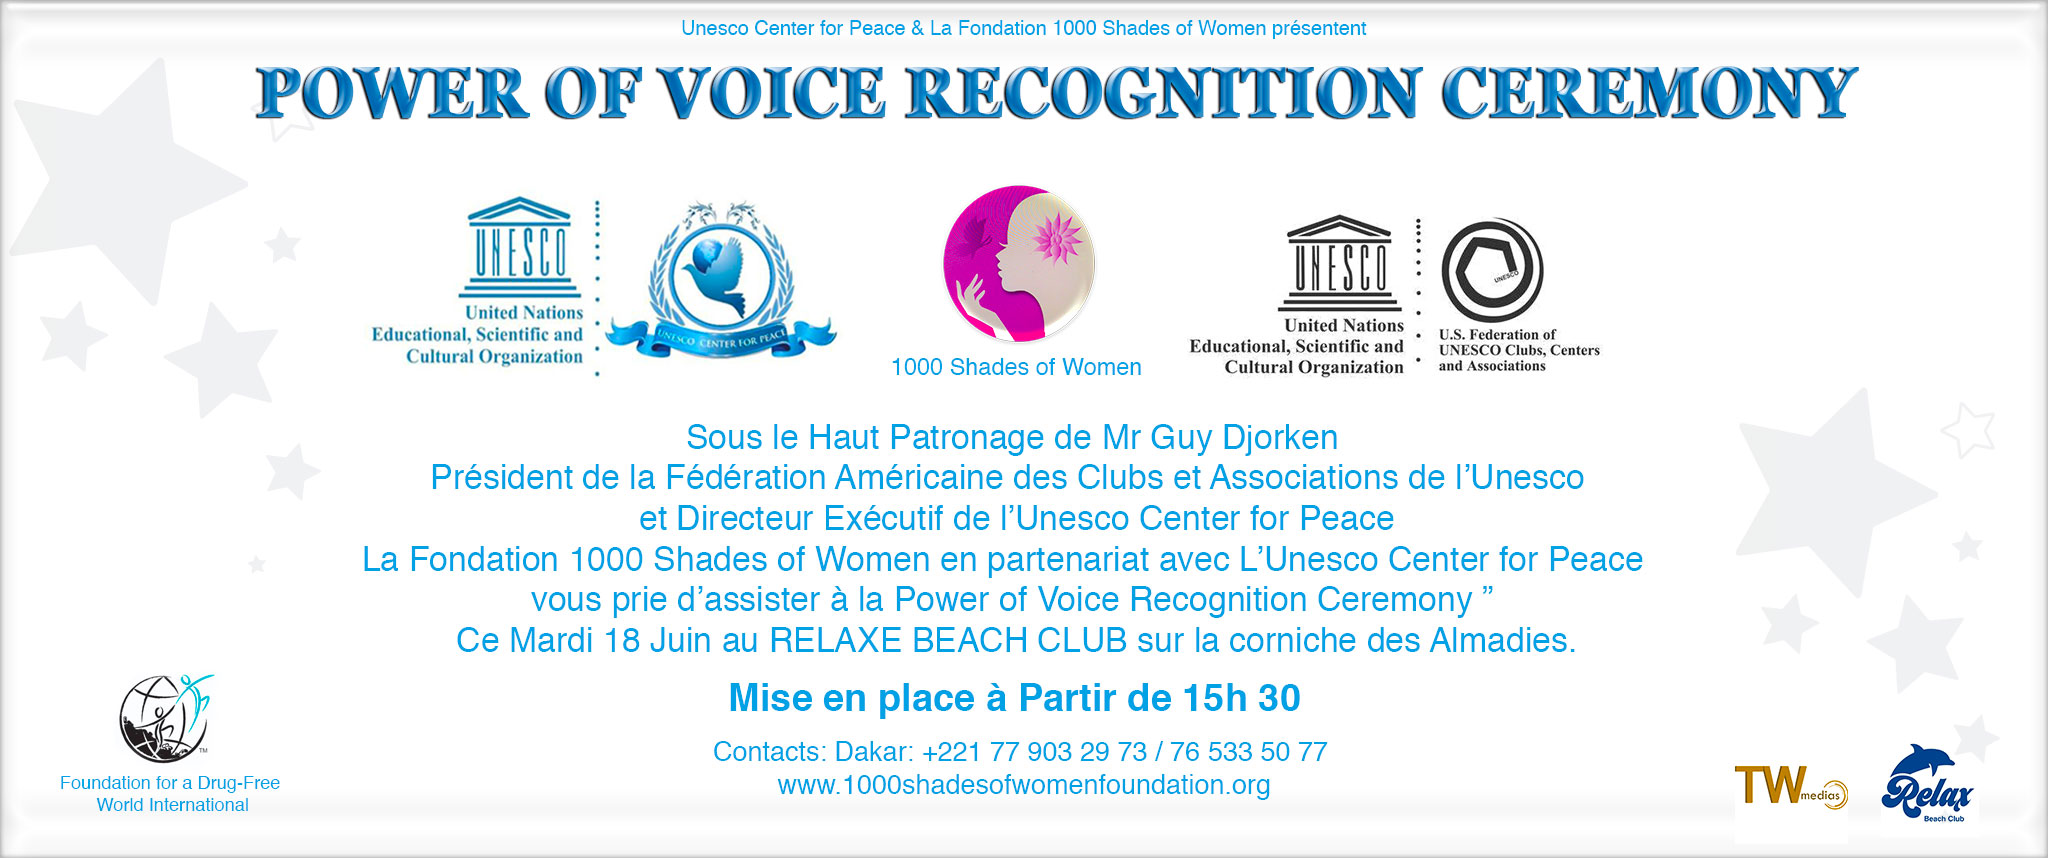 POWER OF VOICE RECOGNITION CEREMONY